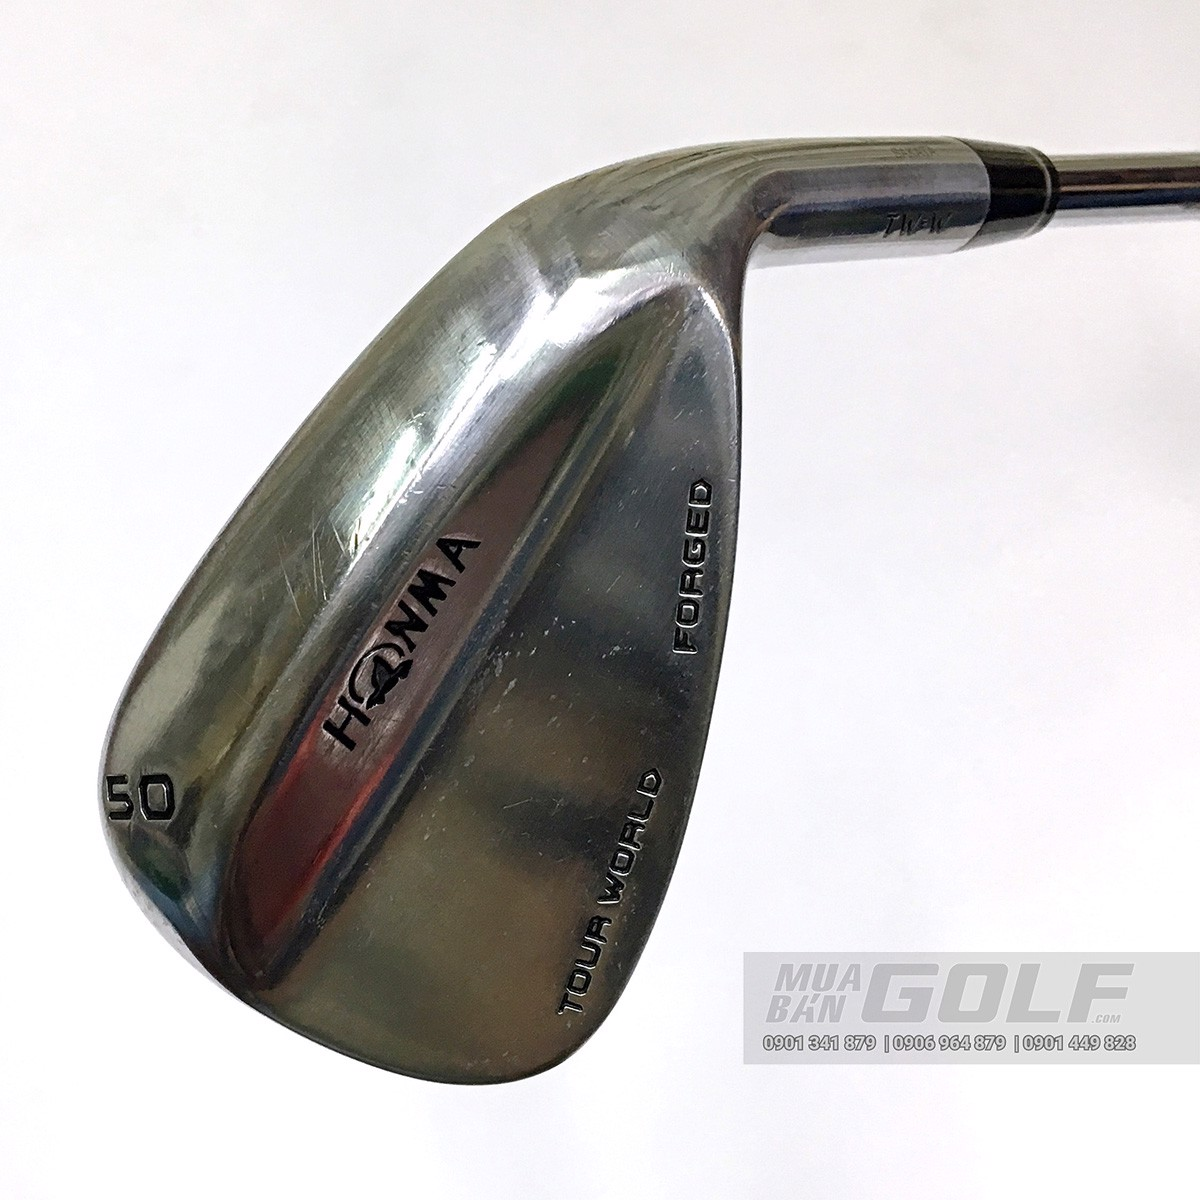 GAY GOLF WEDGE HONMA TOUR WORLD TW LOFT 50 R SCW HM2